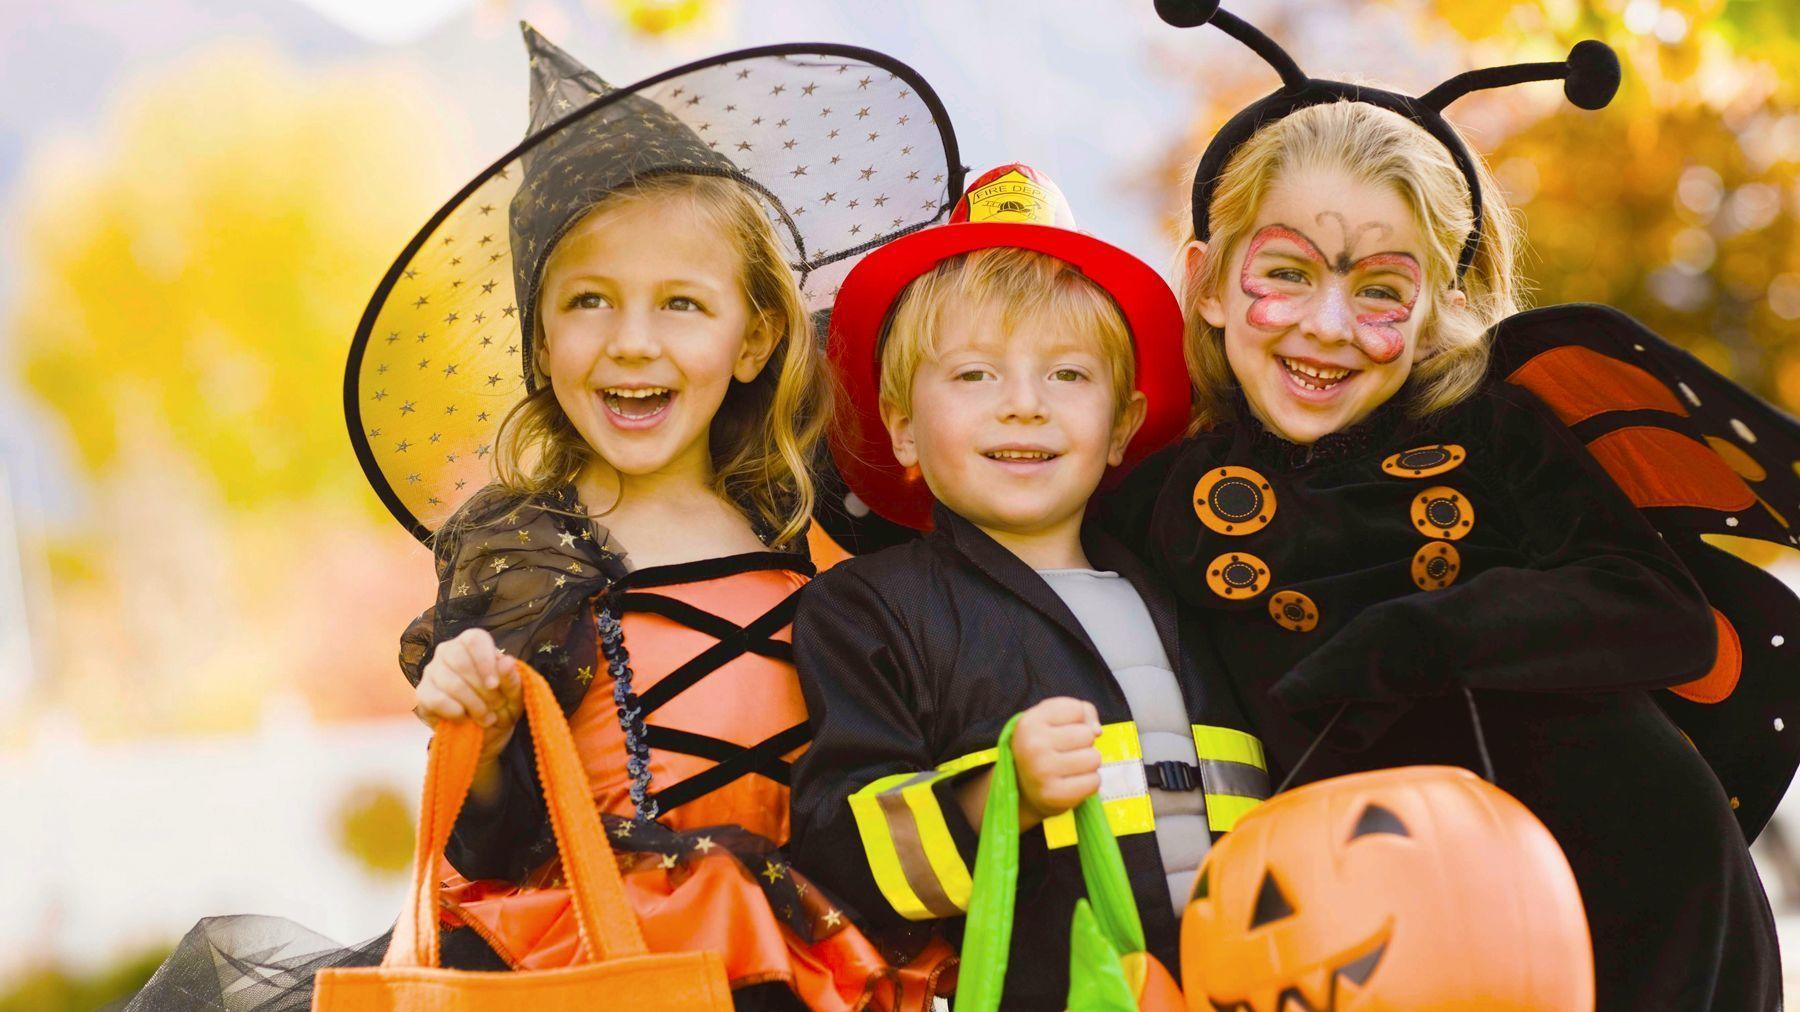 Lots of Halloween fun available for all ages - Pomerado News